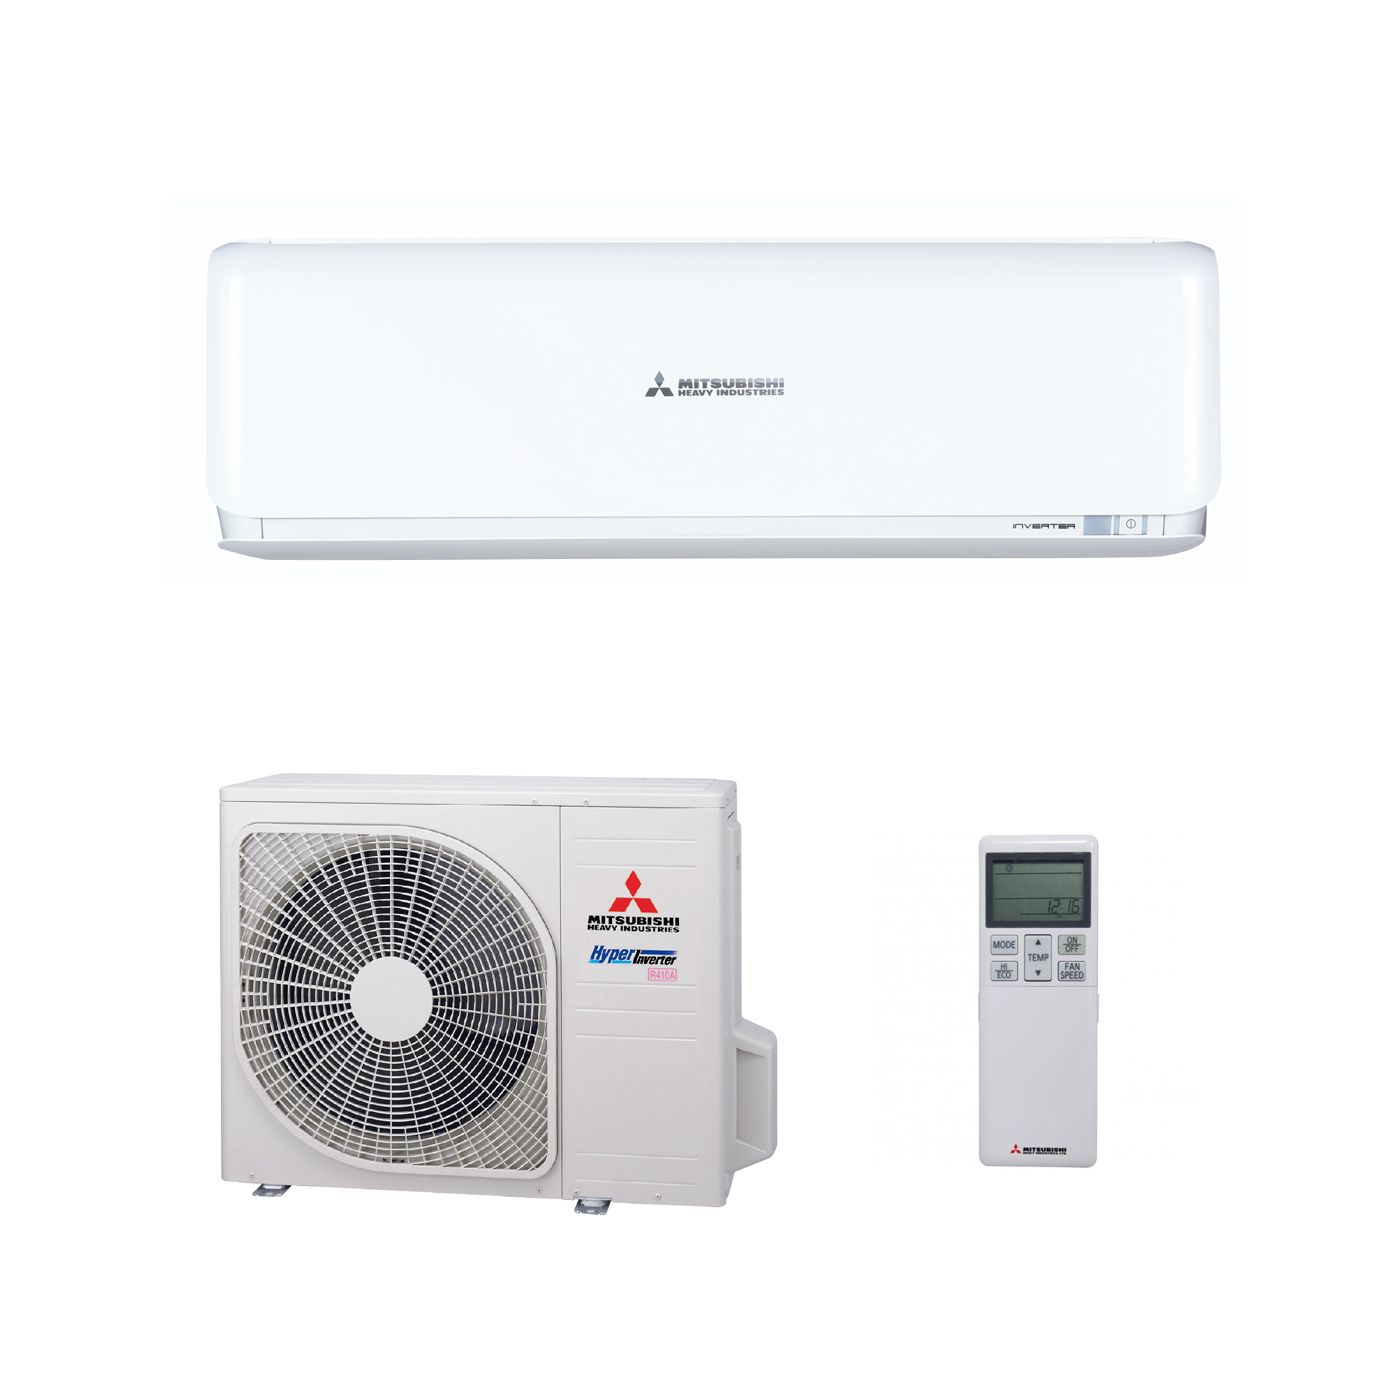 old hyper heat and review heating seer cooling ductless btu system pumps conditioners pump air mitsubishi